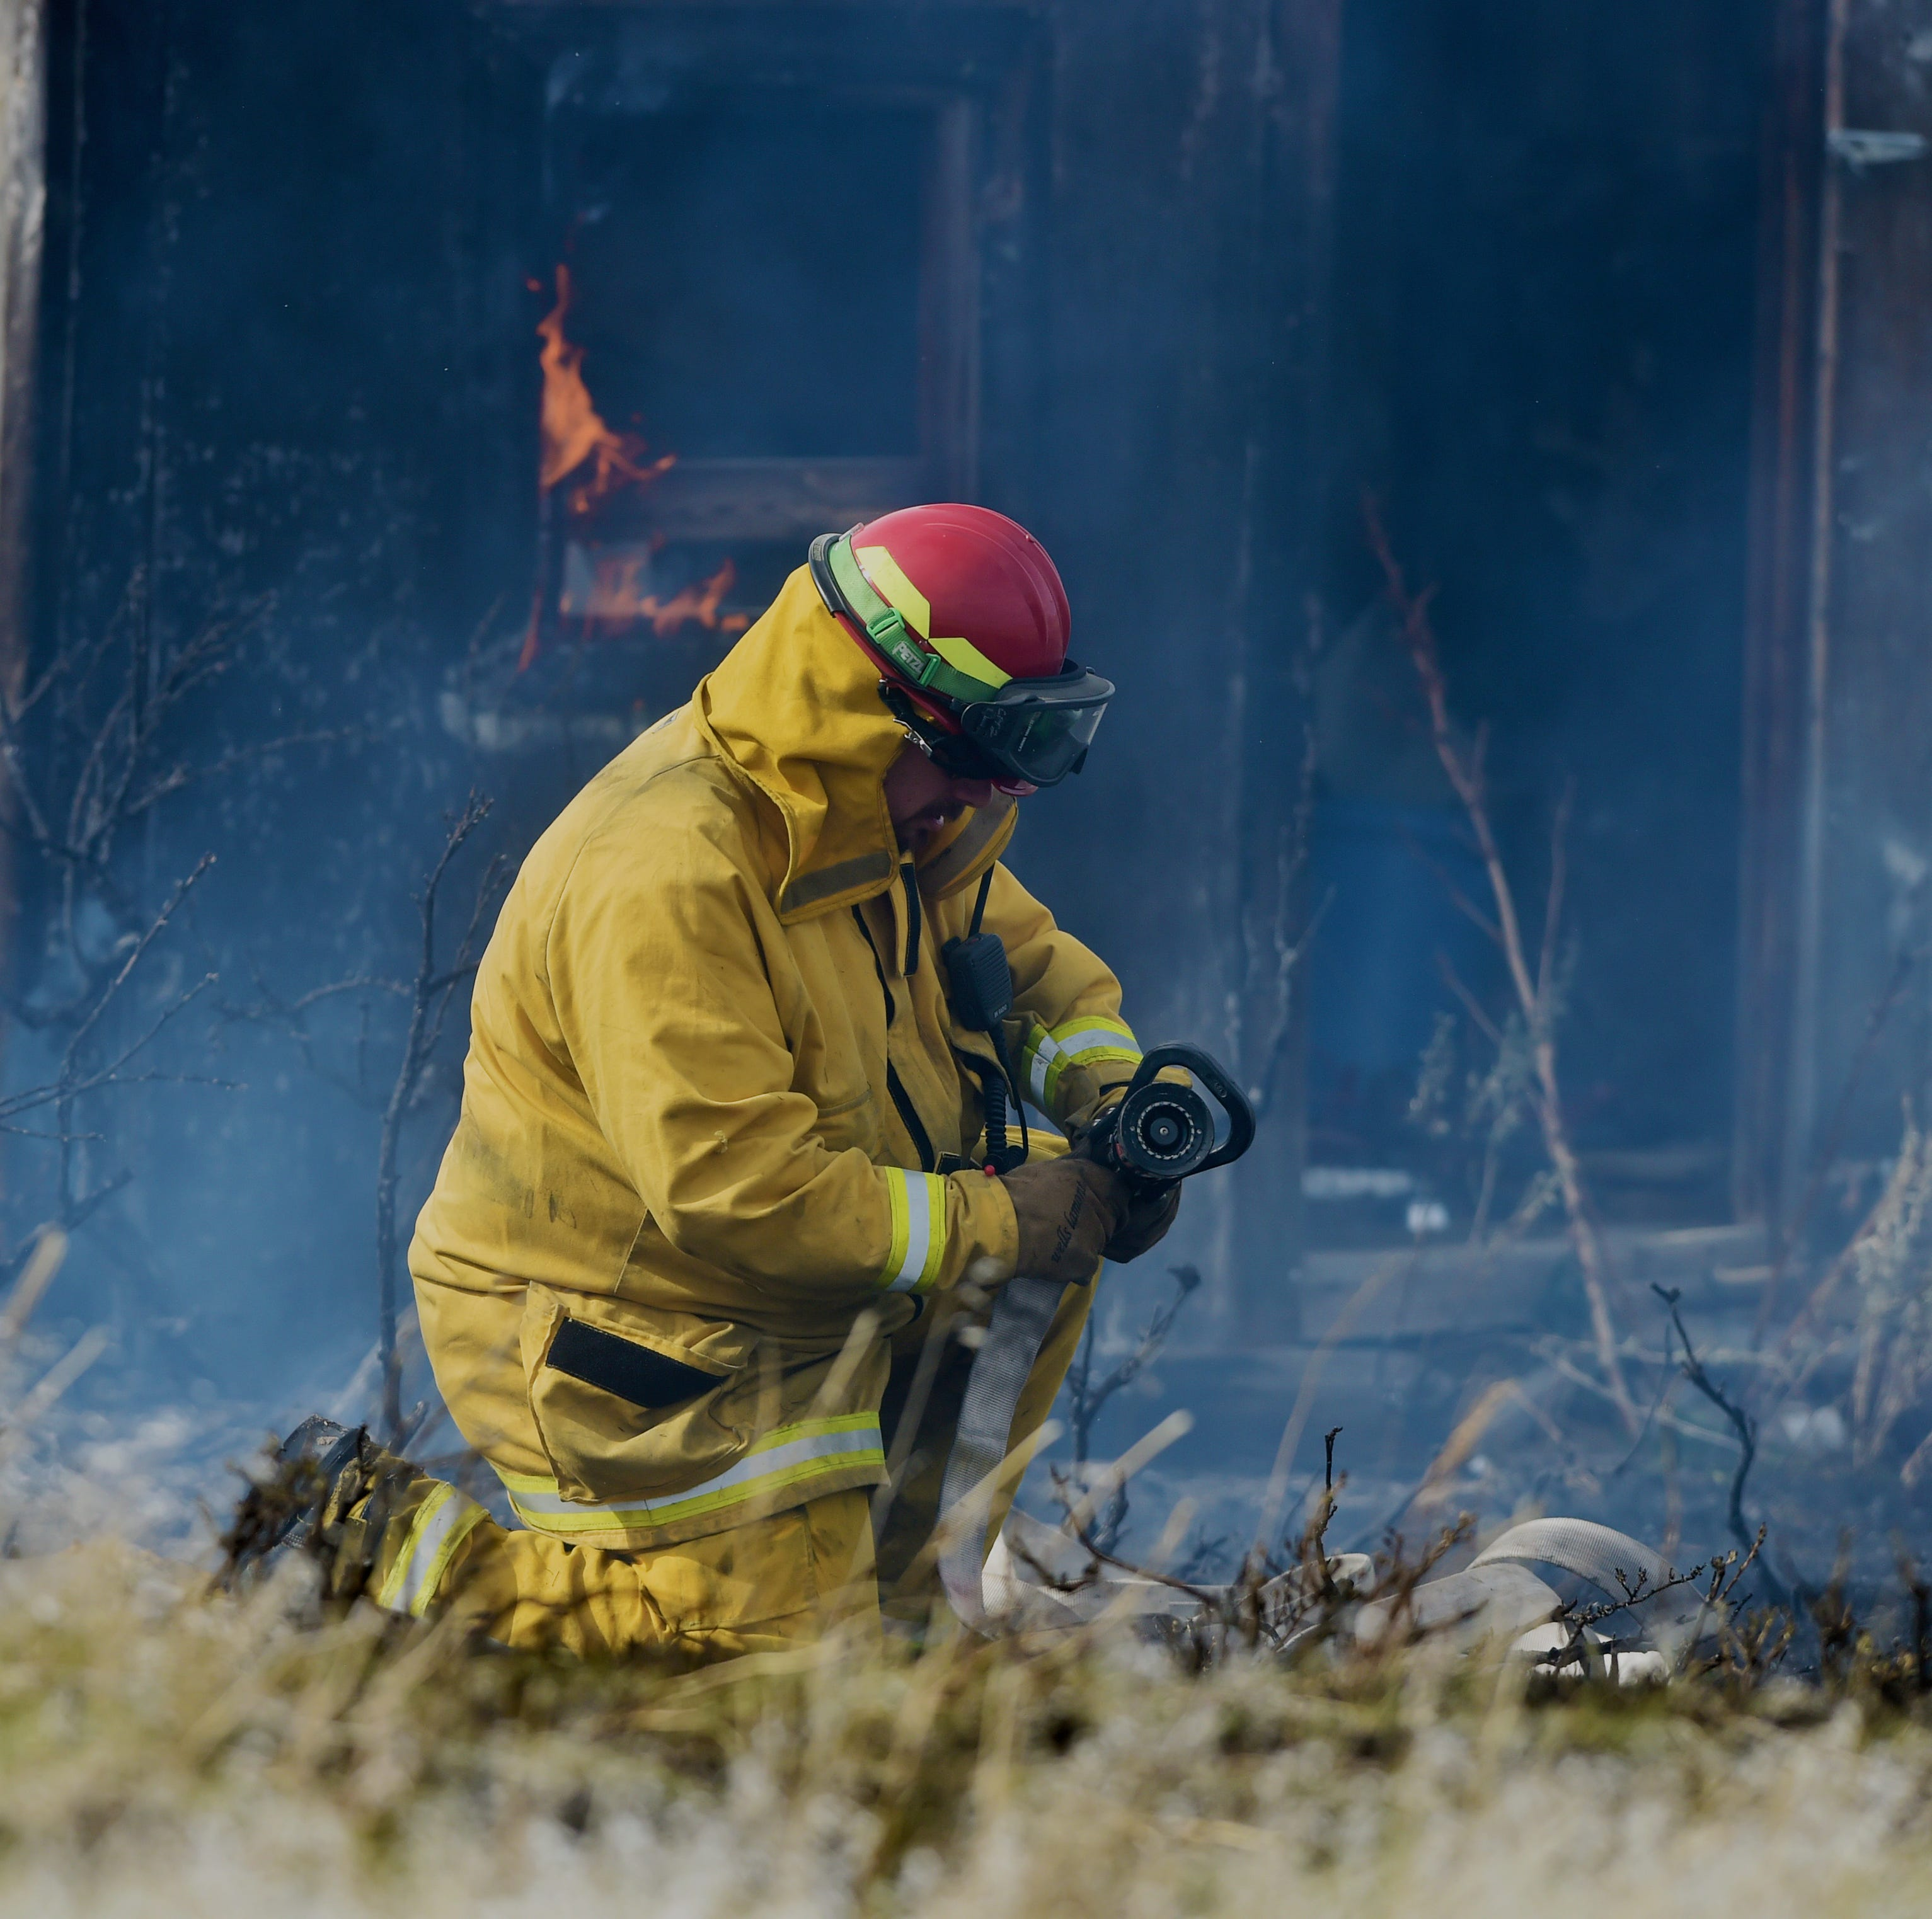 Grass fire north of Great Falls contained